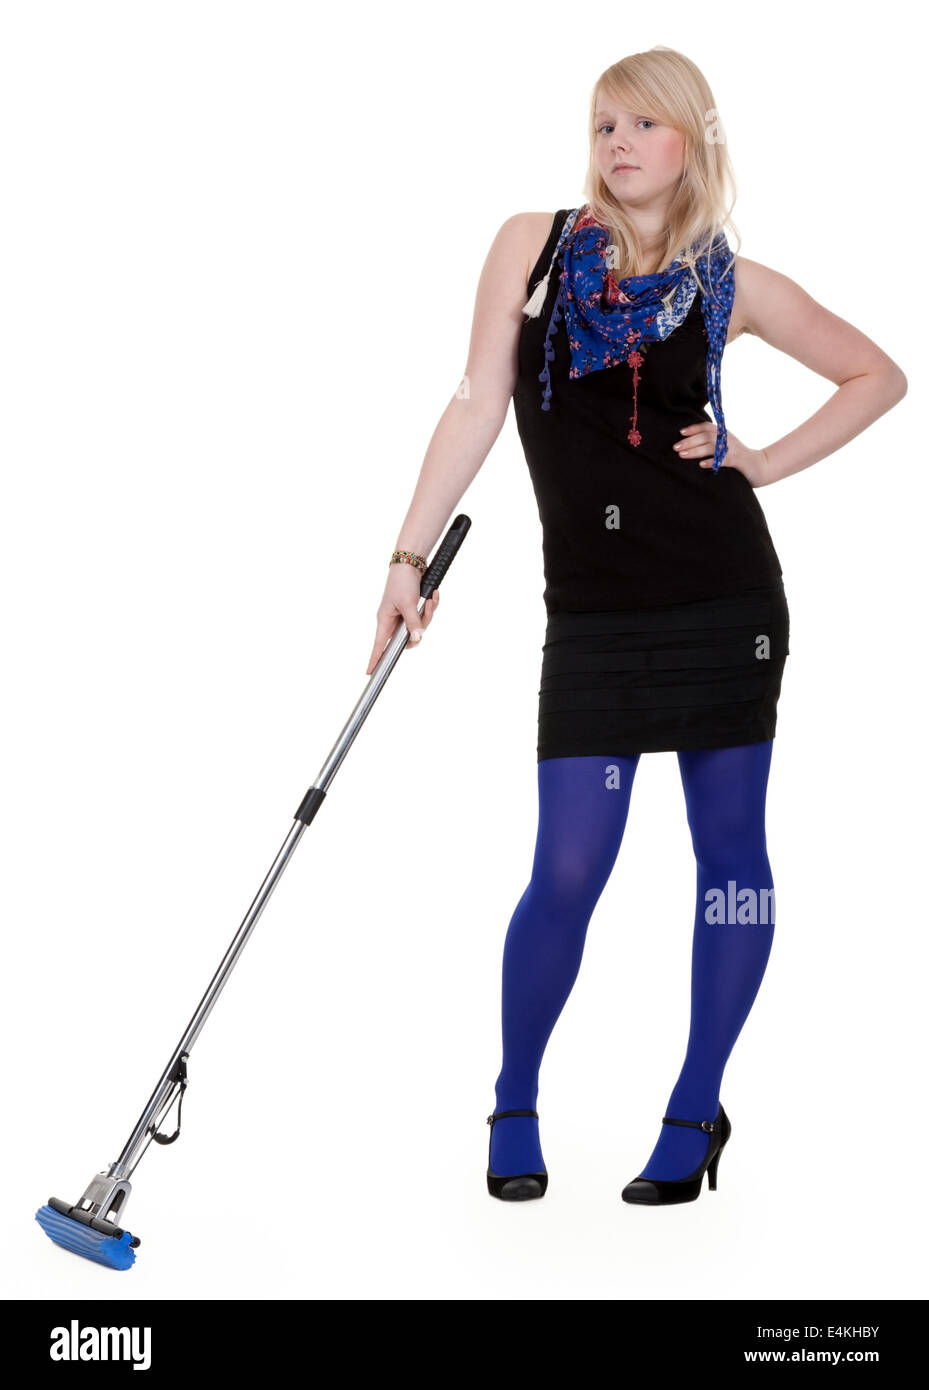 girl with a mop - Stock Image